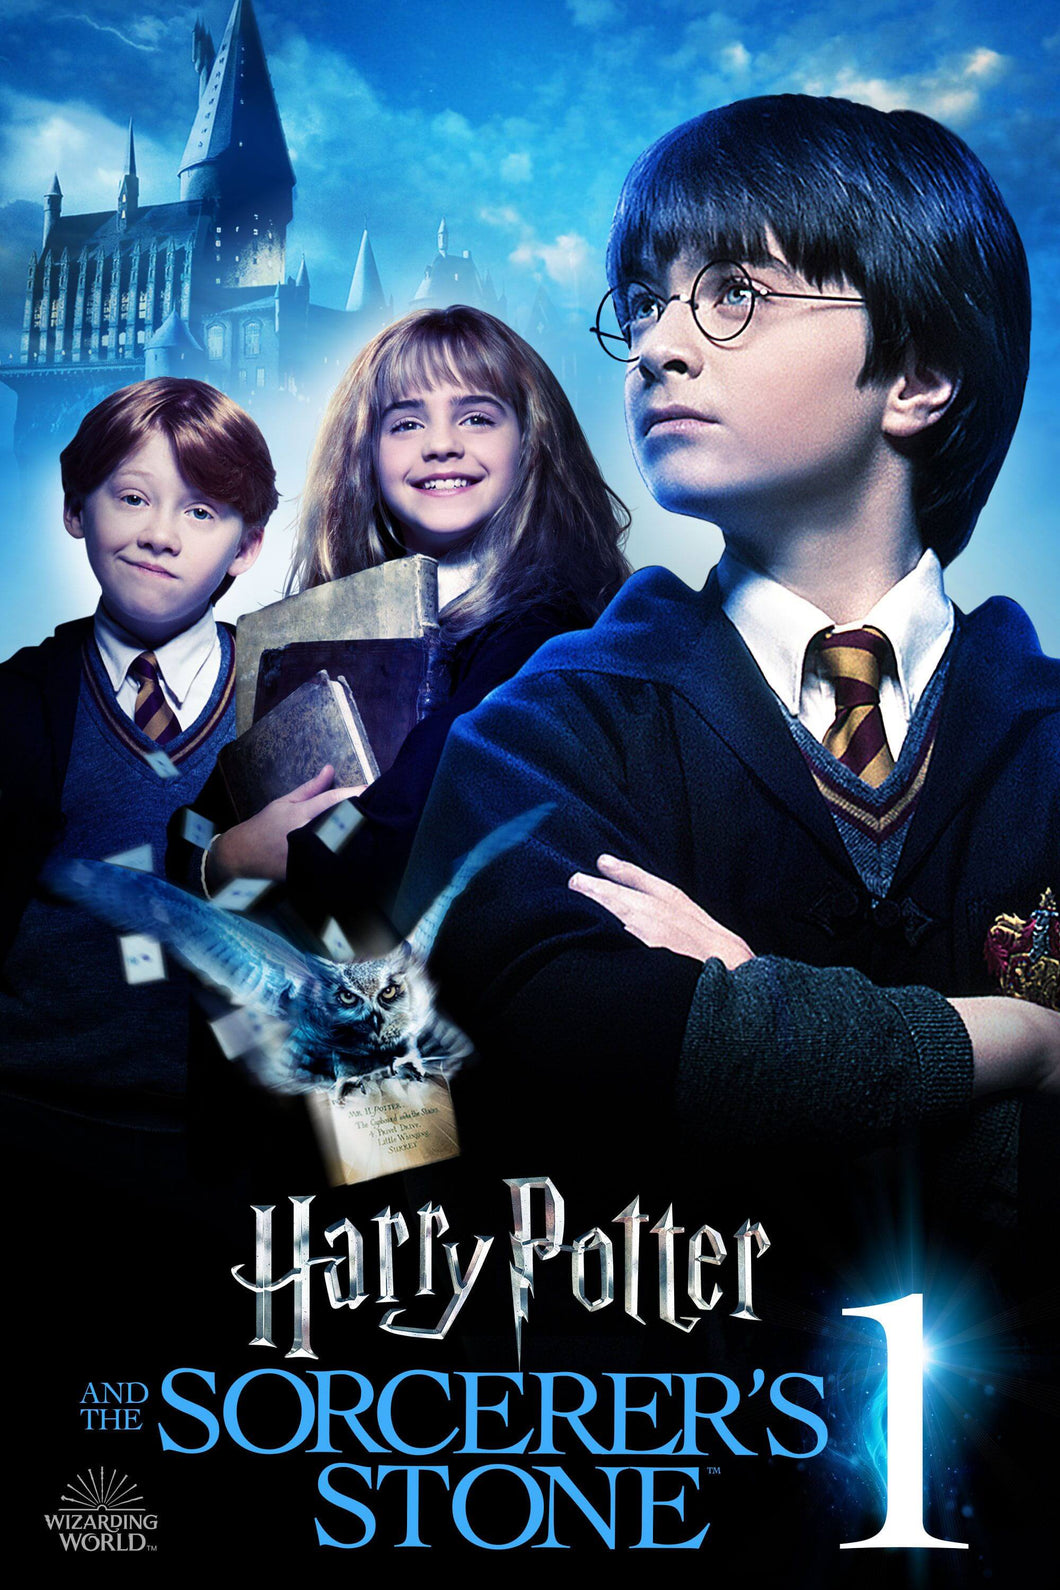 Harry Potter and the Sorcerer's Stone | HD Movies Anywhere Code Ports to Vudu, iTunes, GP - Movie Sometimes